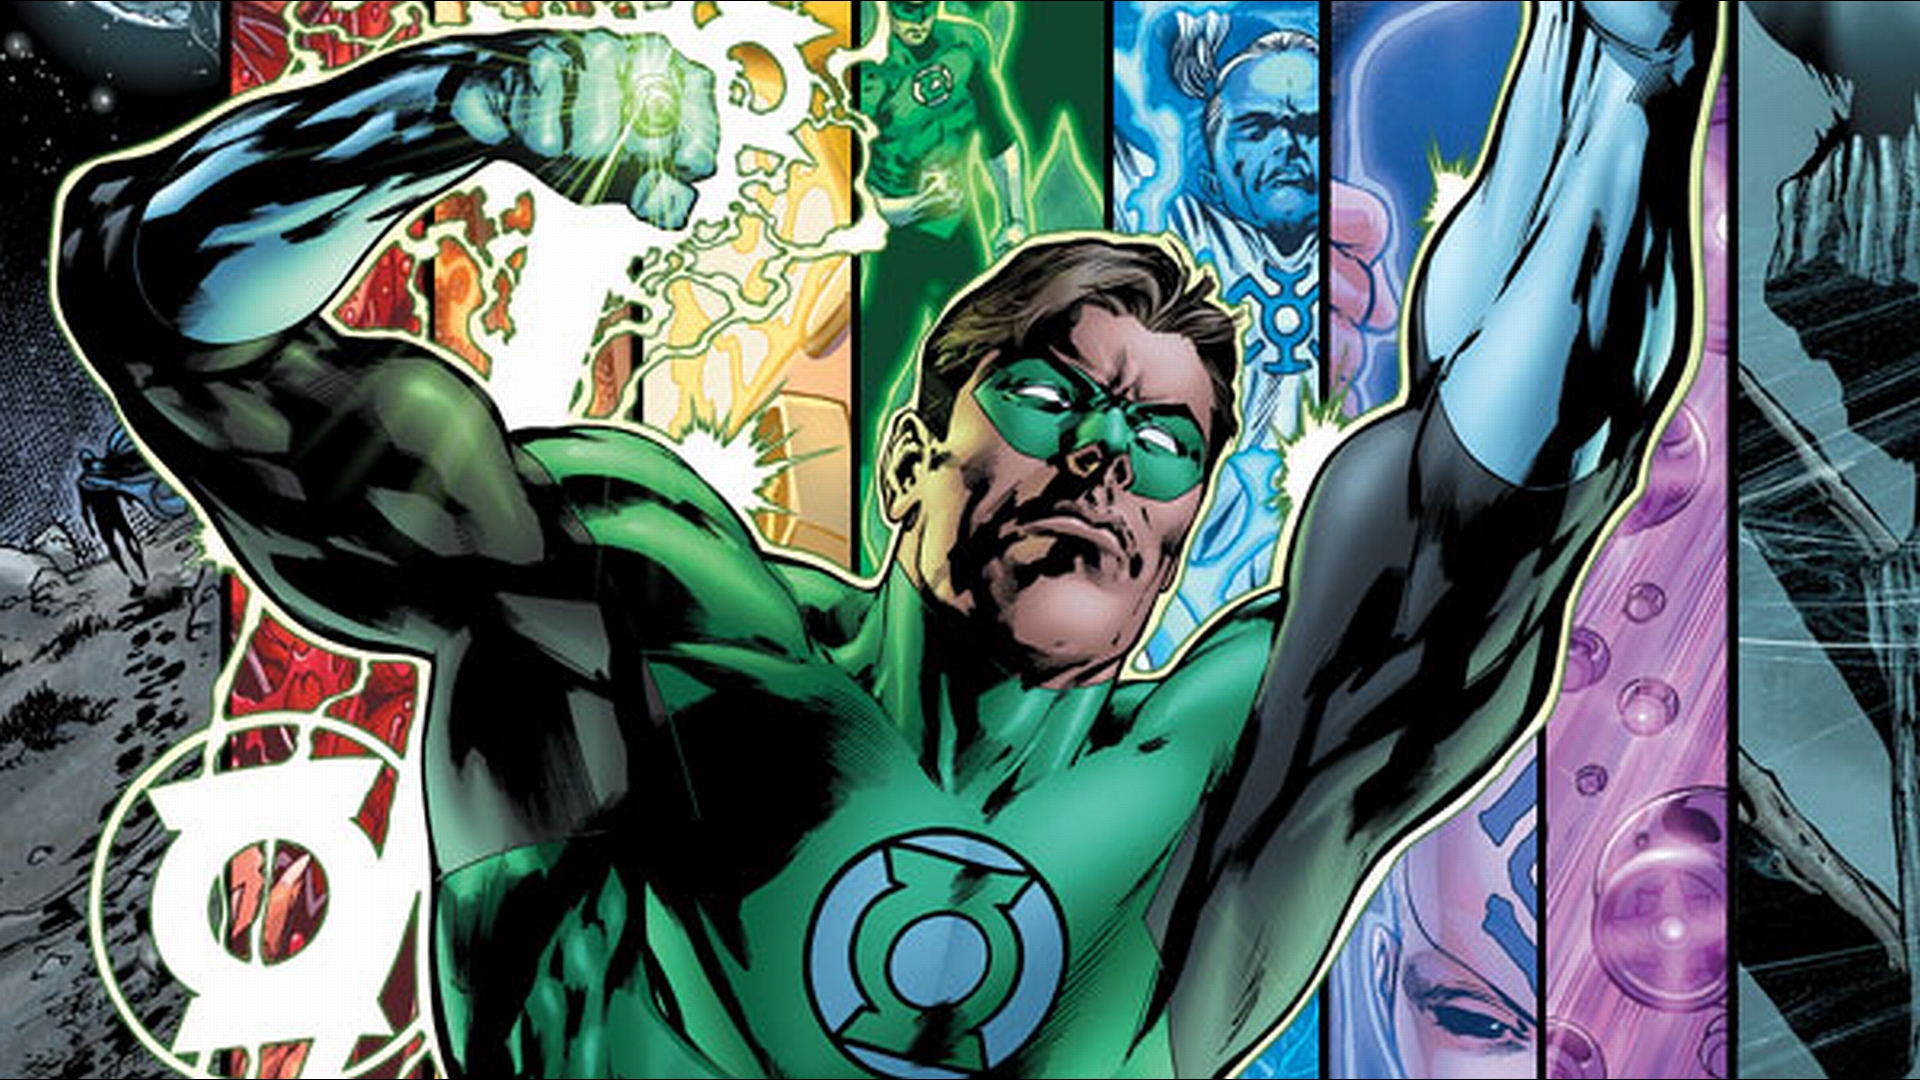 Green Lantern Computer Wallpapers Desktop Backgrounds 1920x1080 1920x1080